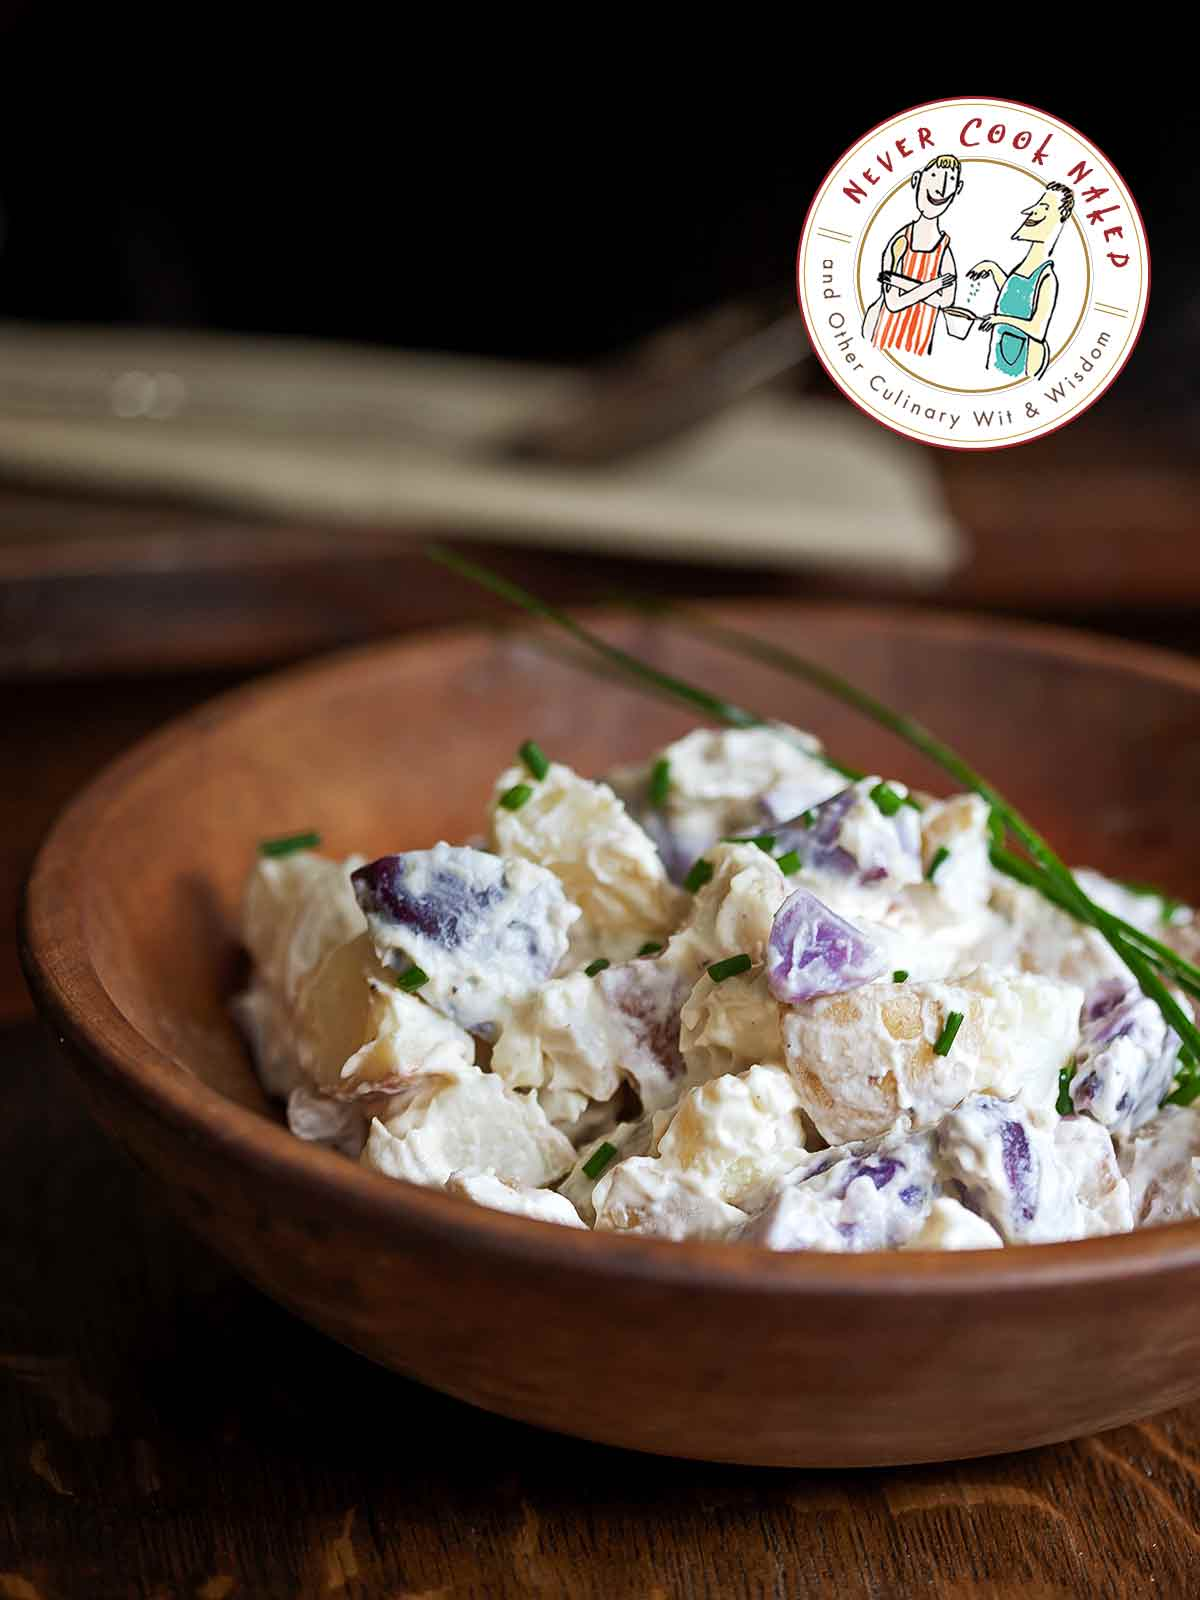 A wooden bowl filled with mayo-based potato salad as an illustration of how to store salad made with mayo.